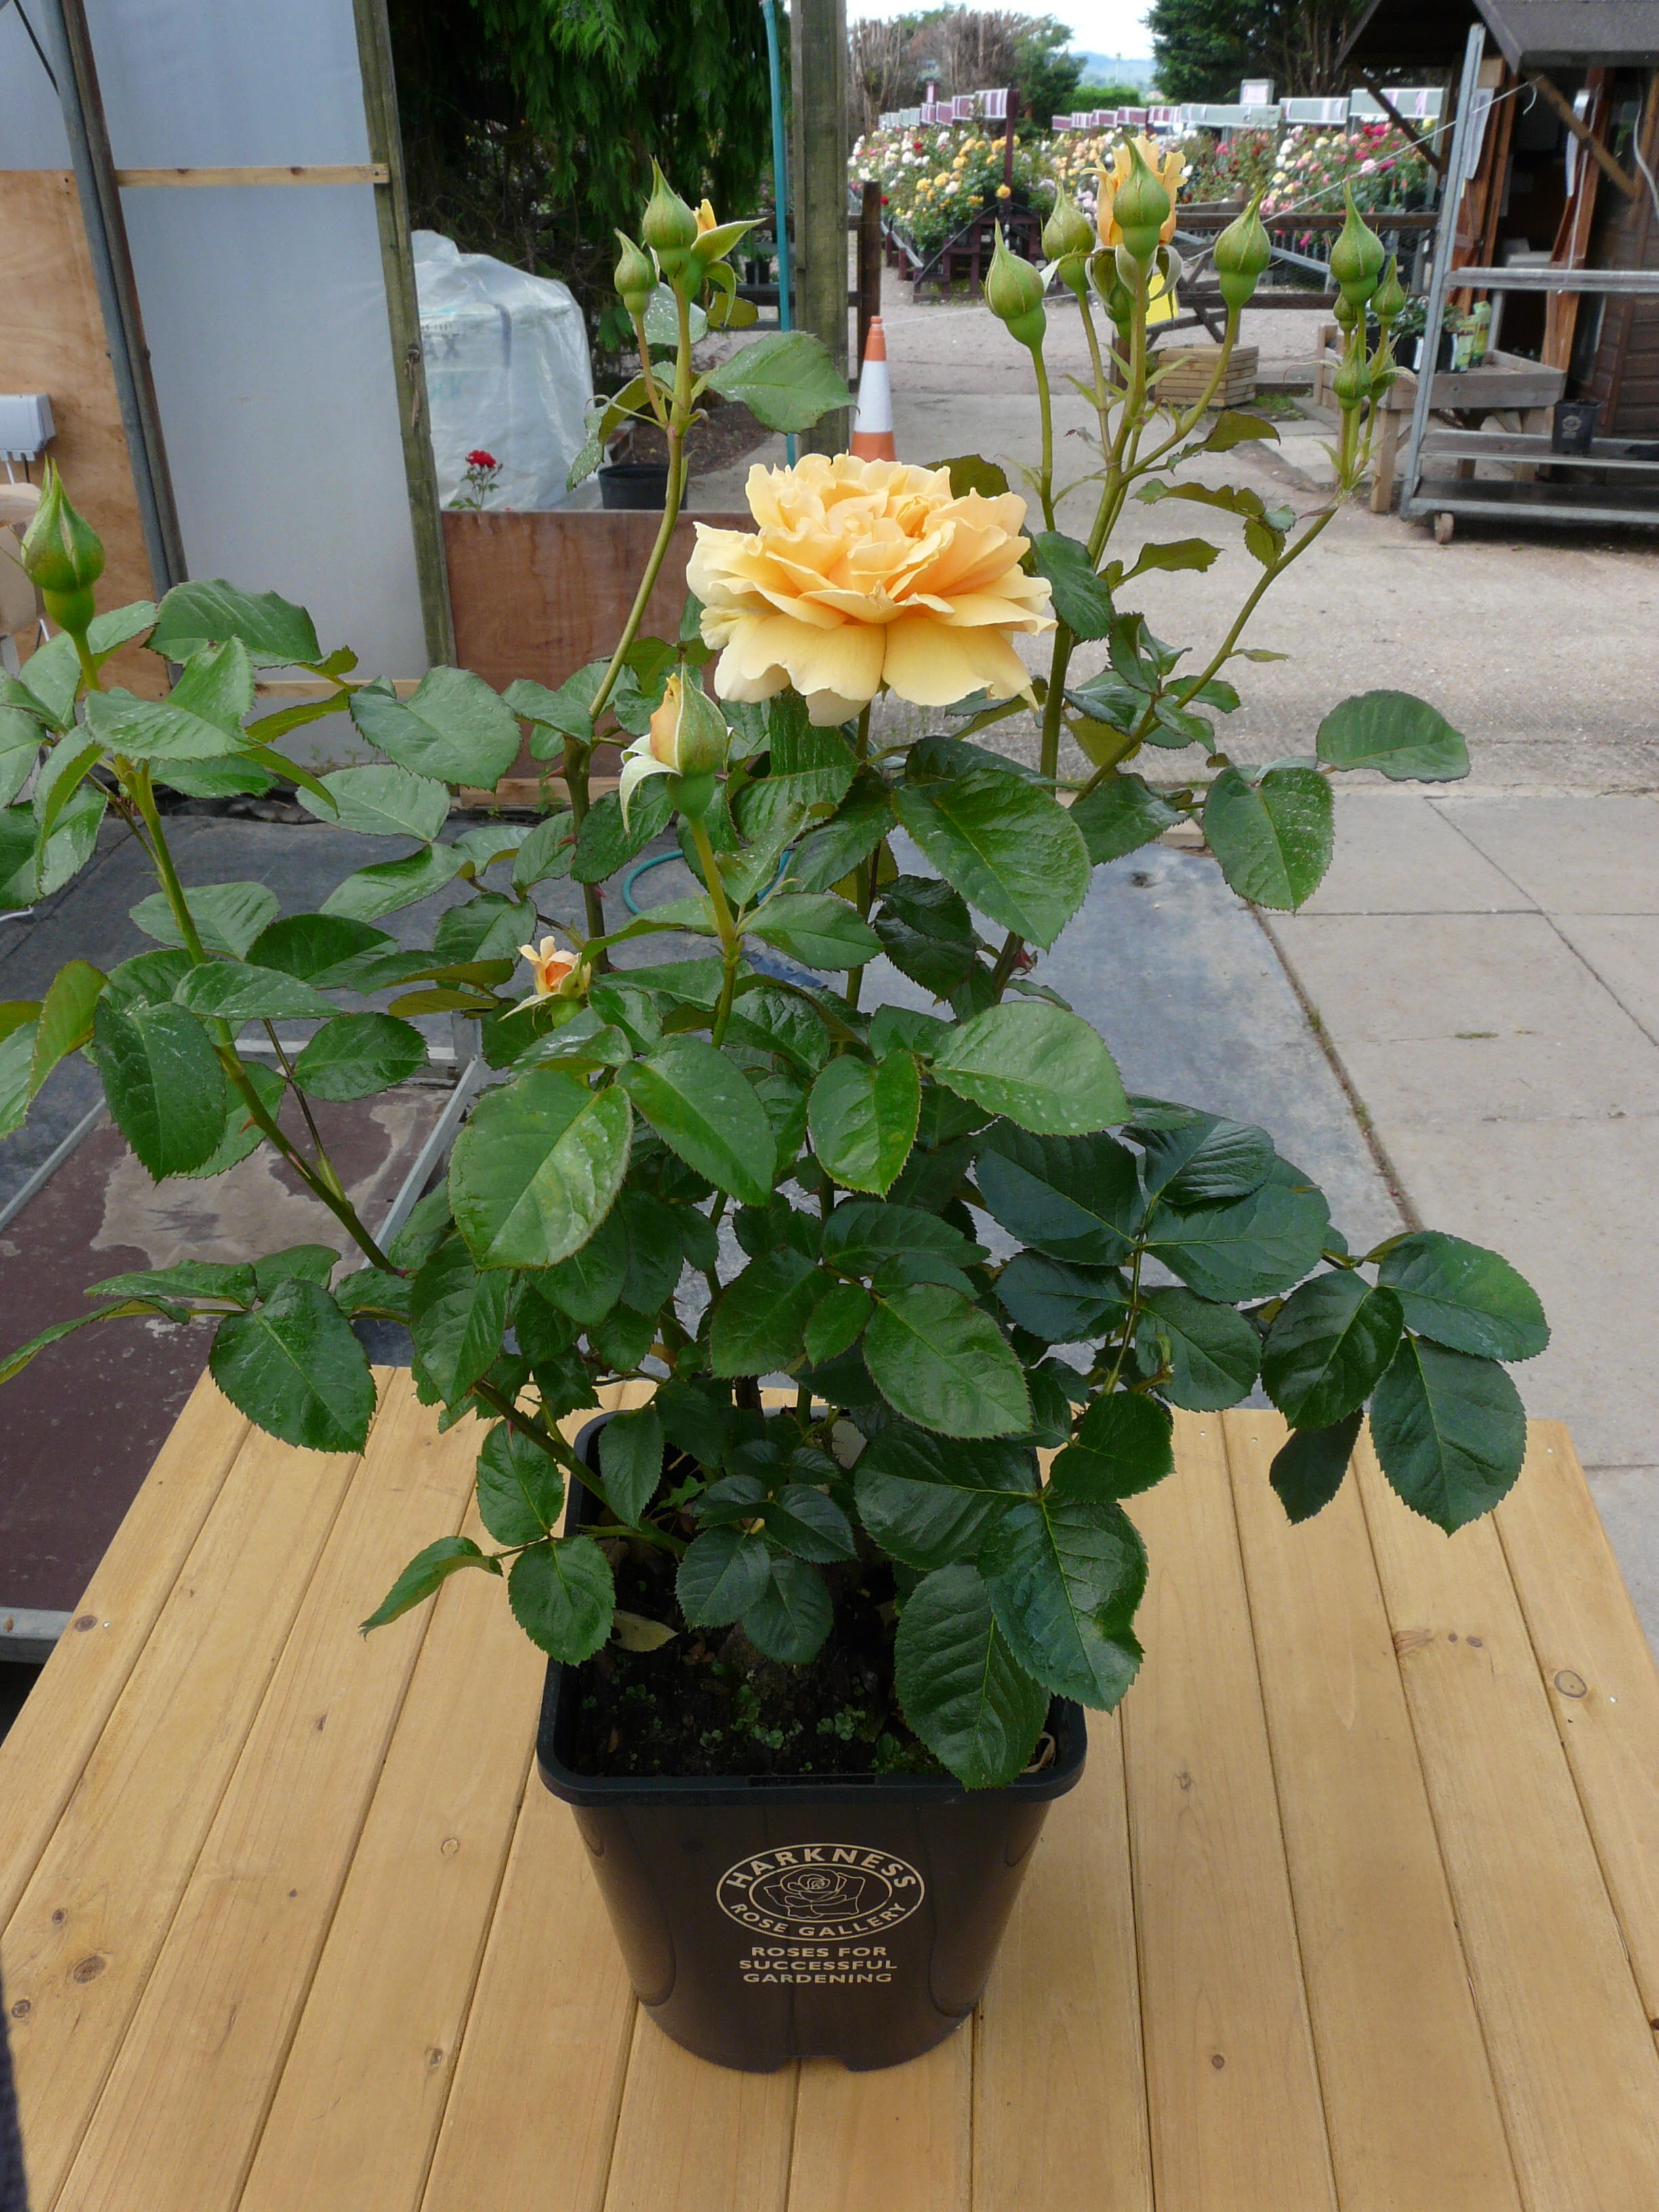 Our Pot Grown Roses Are In A 4 5 Litre With Top Quality Compost Slow Release Fertilizer To Feed The Plant First Season